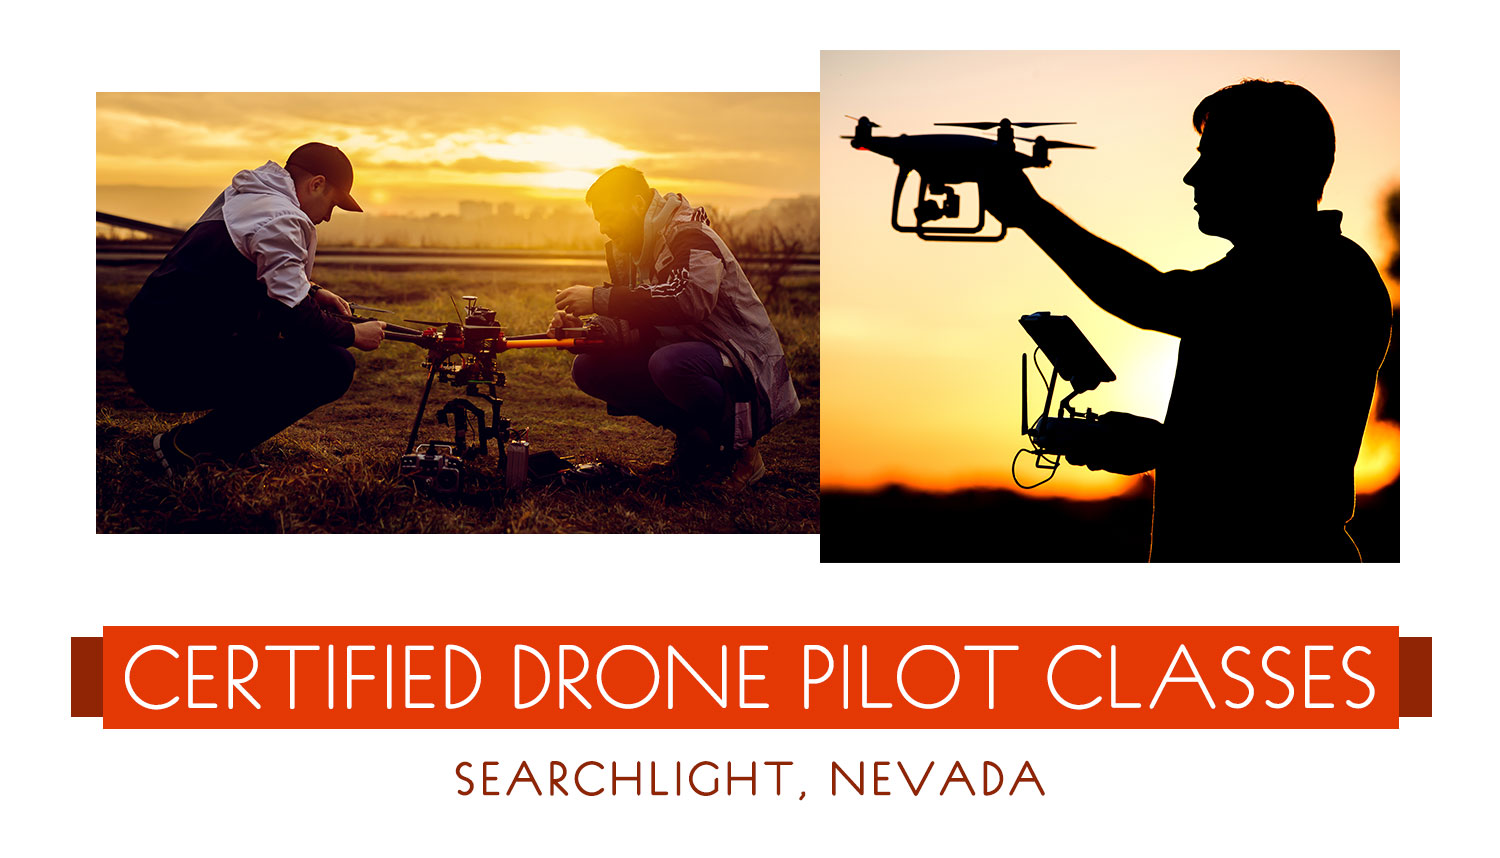 Certified Drone Pilot Classes in Searchlight, Nevada